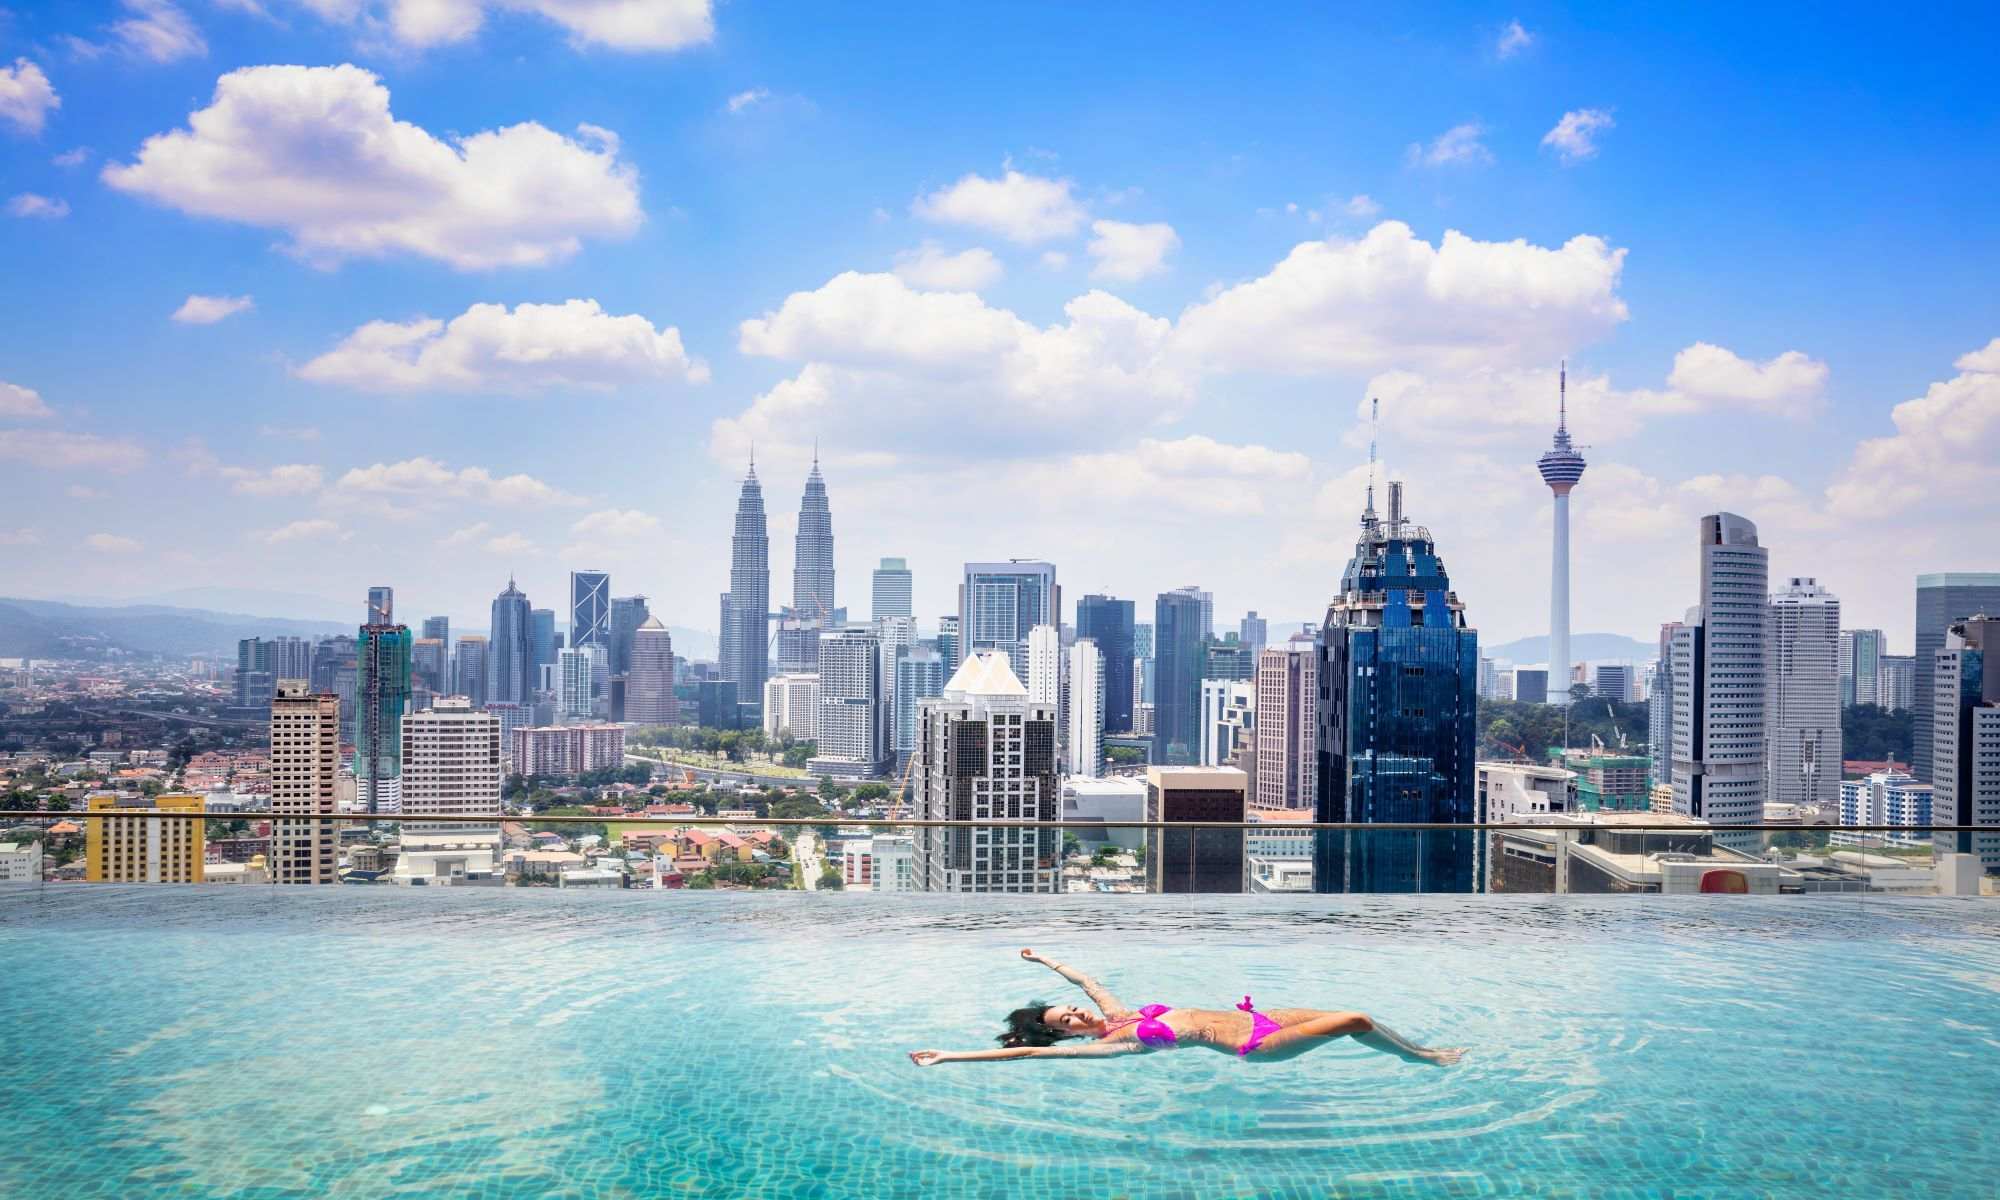 Rooftop pool, things to consider